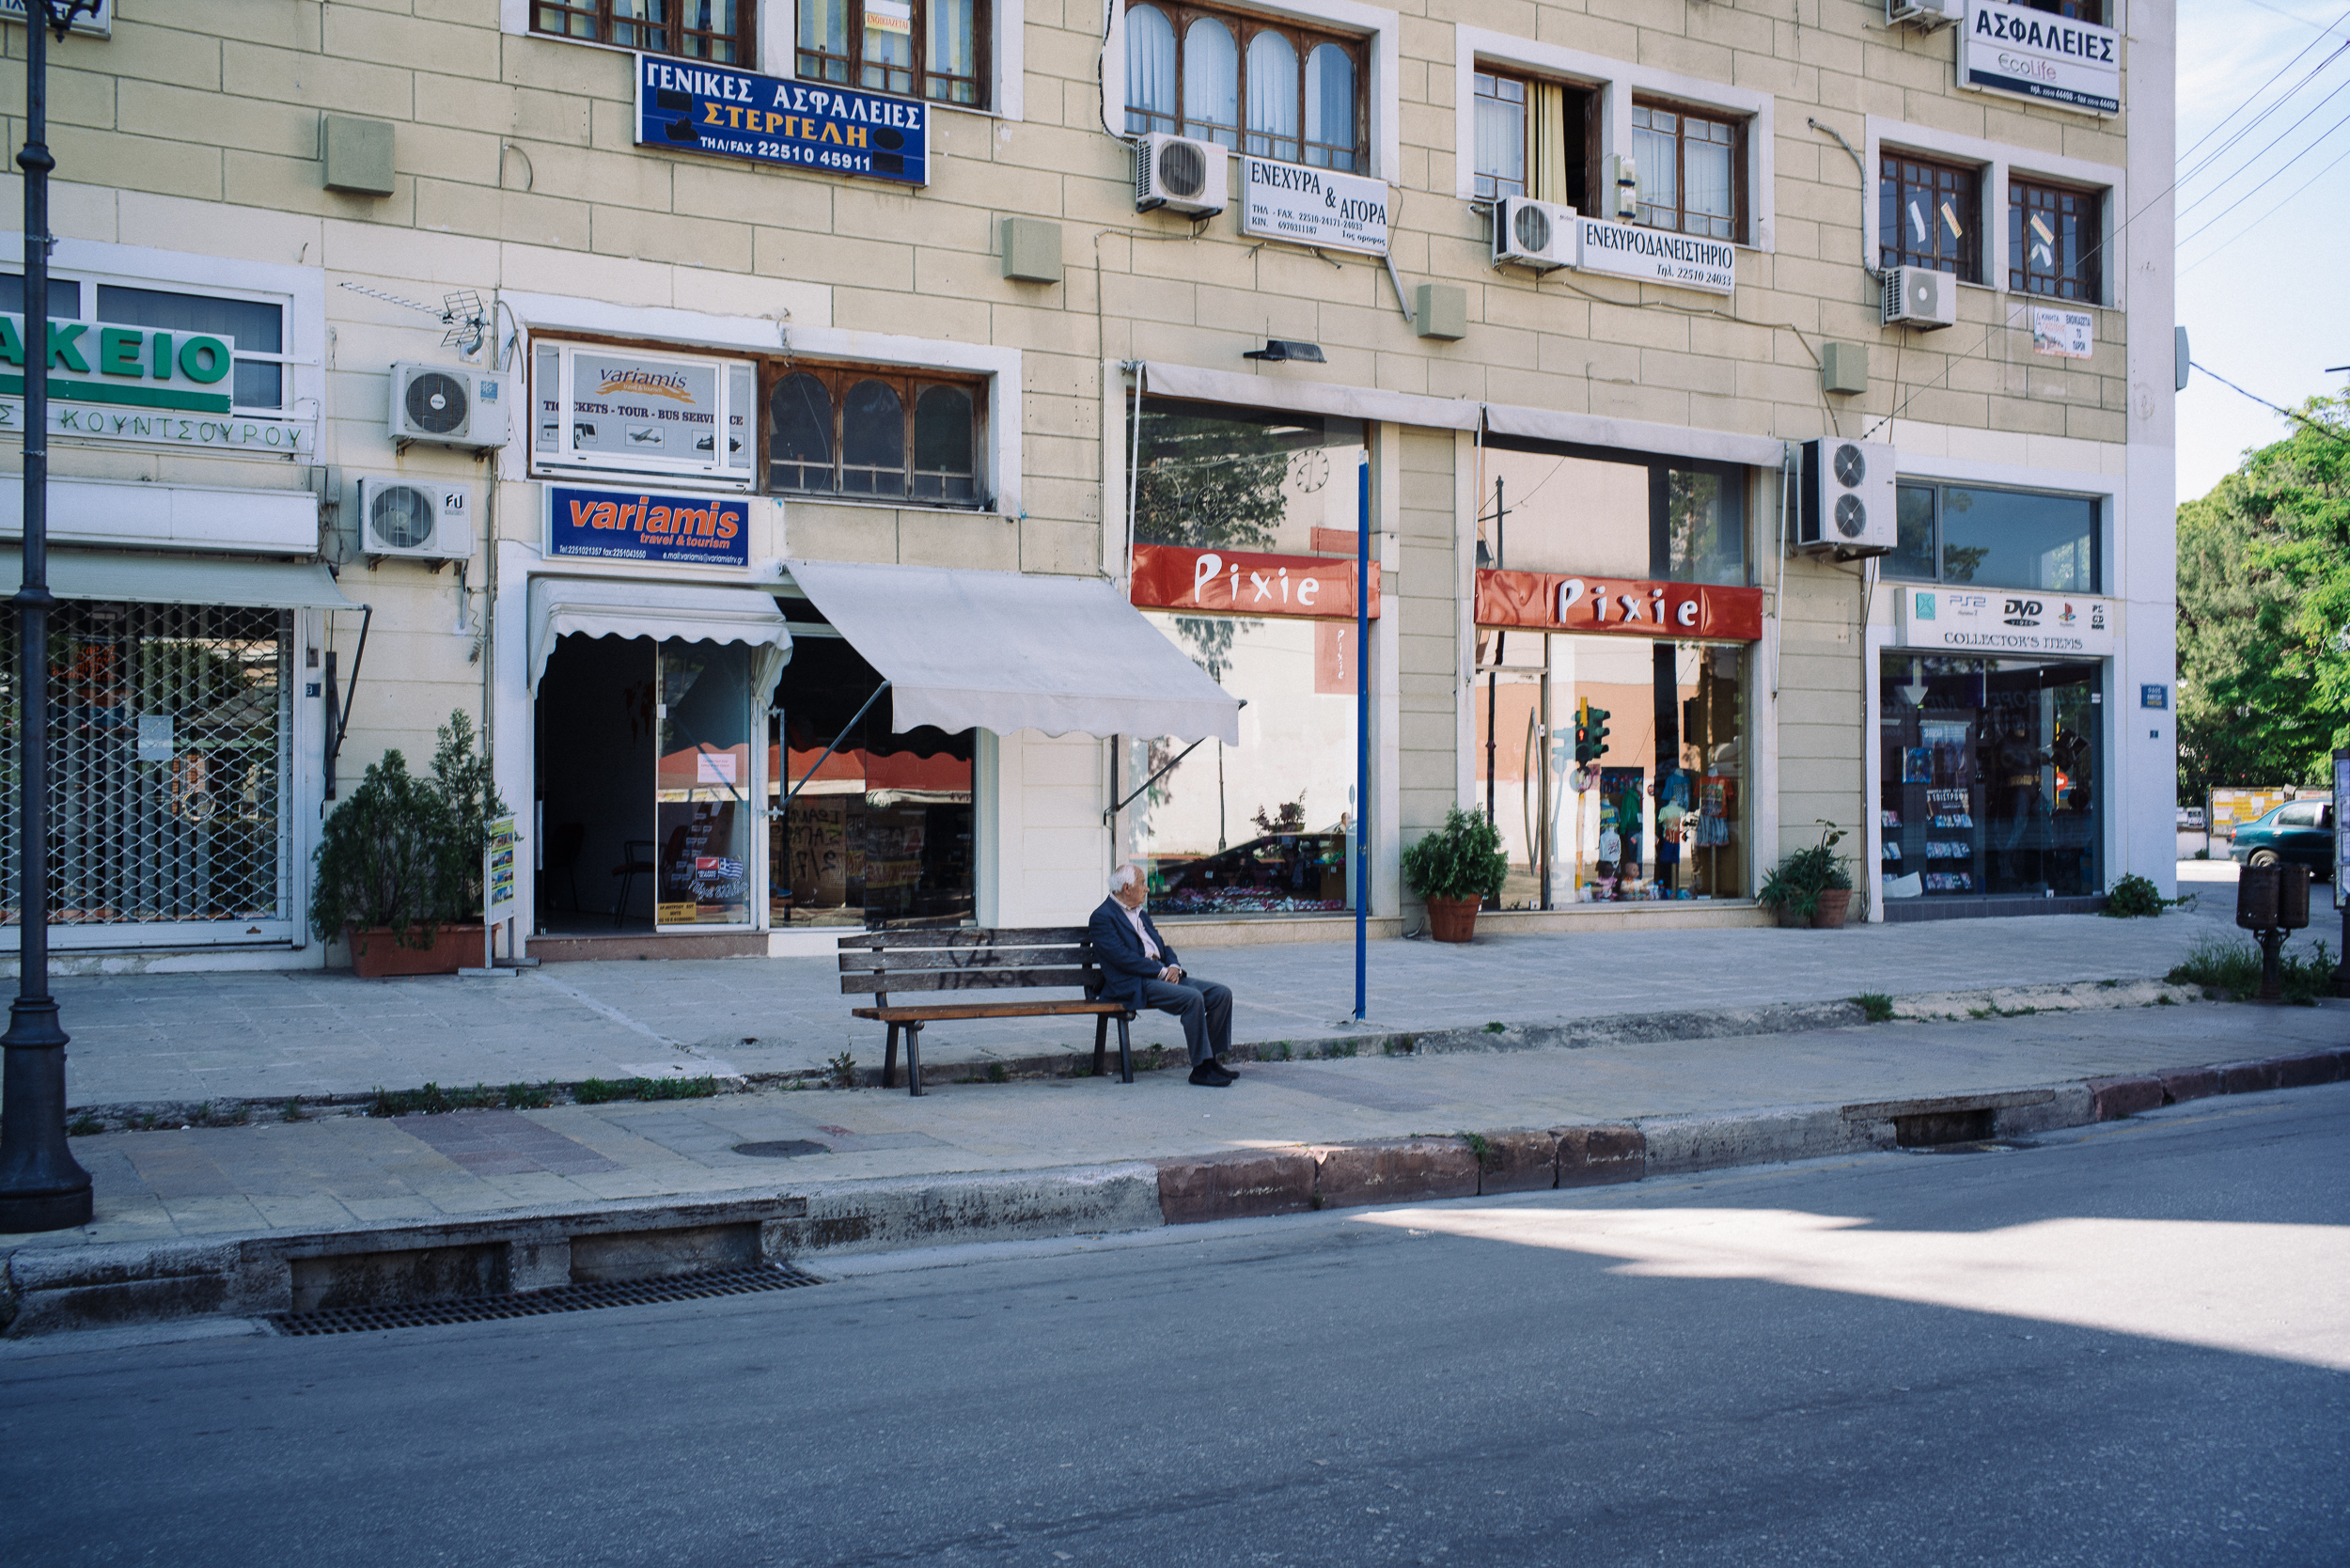 The Greek economy is already suffering from the austerity measures imposed against them before the migrant crisis started to hit its shores. This created a lot of hardships for the people but despite having little for themselves, many Greek people still remain hospitable and welcoming towards the new asylum seekers.